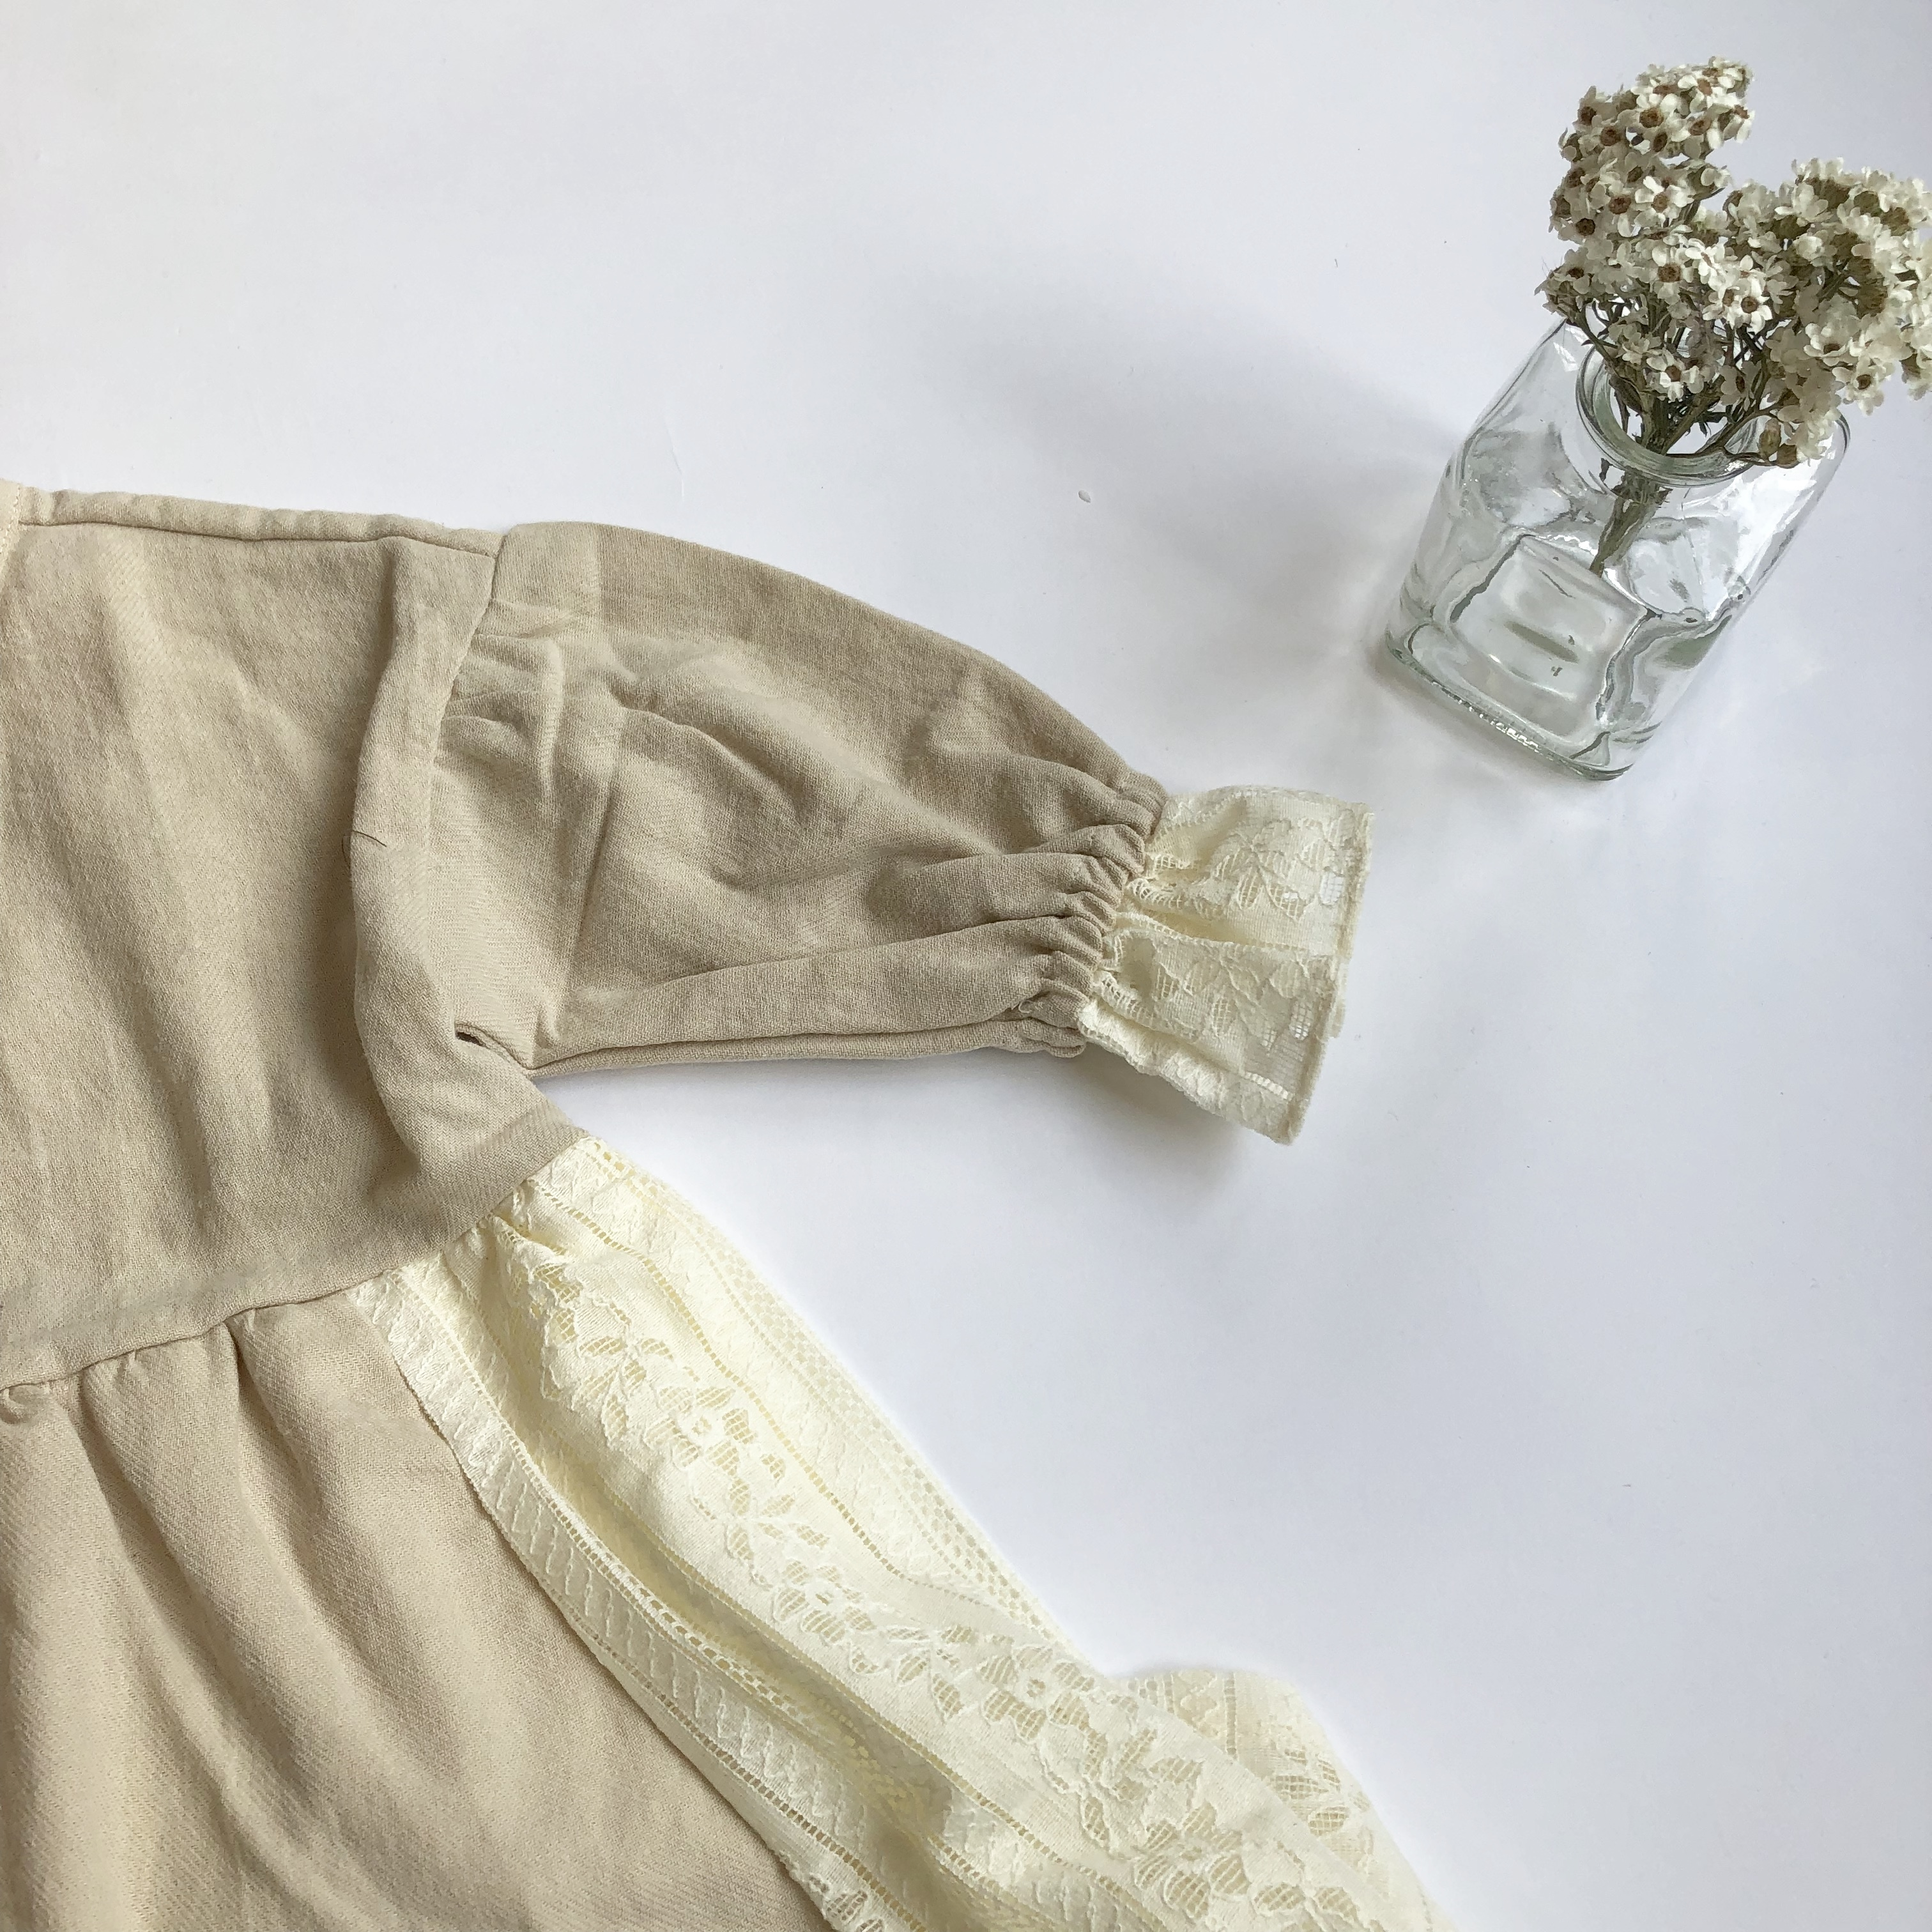 《 151 》Lacy onepiece